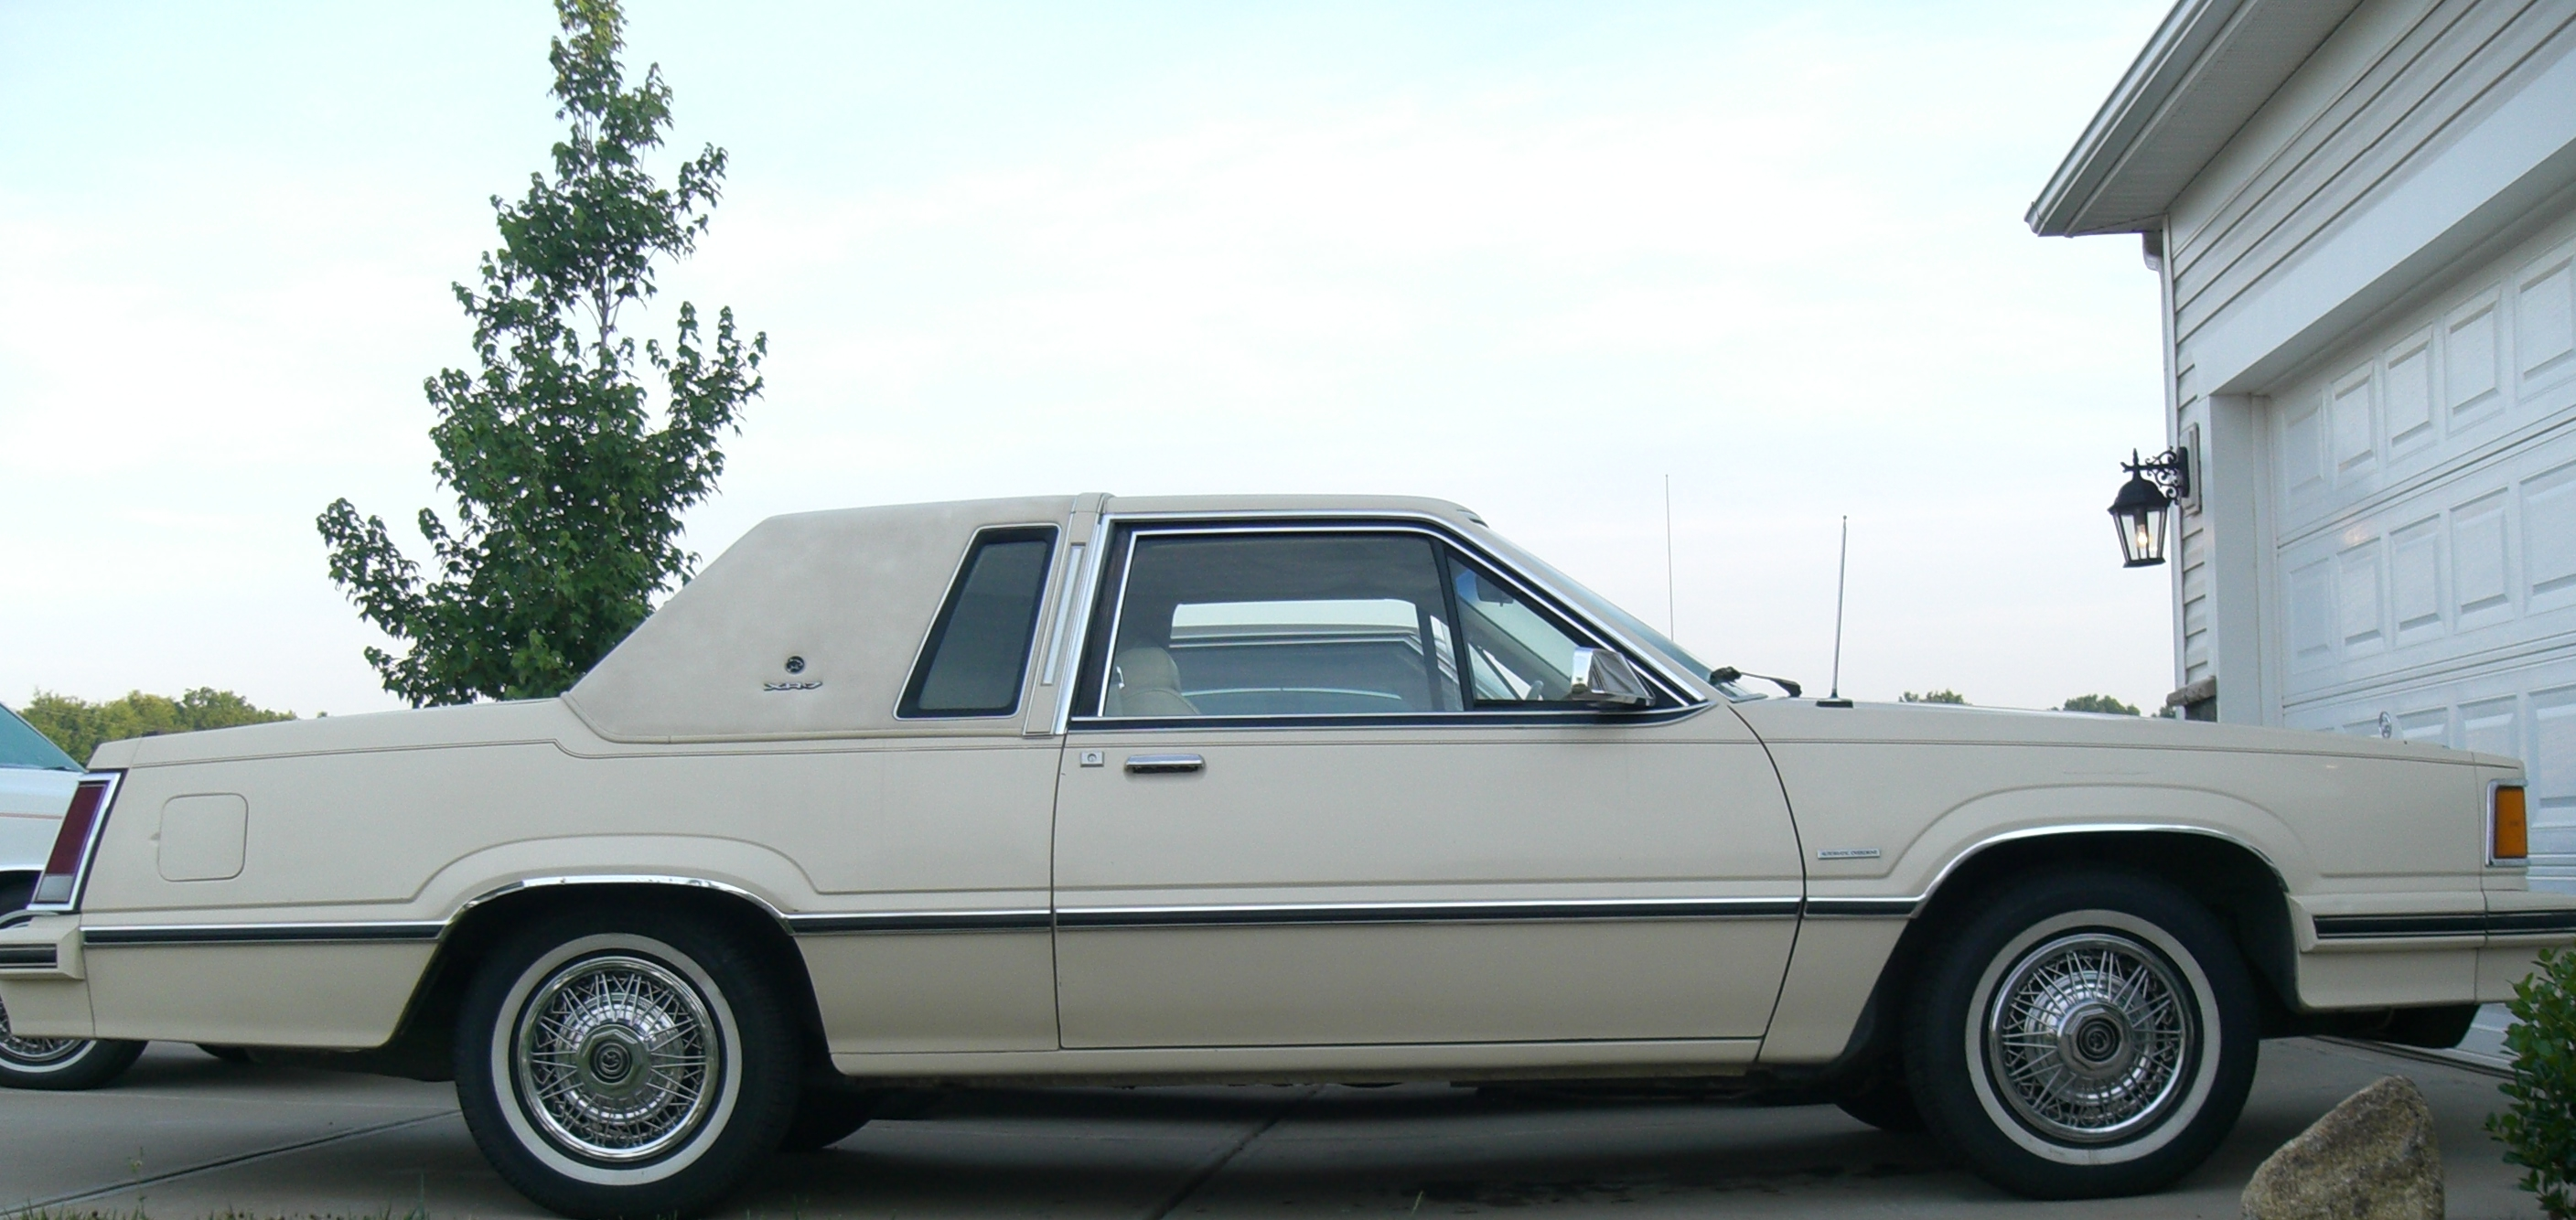 Lincoln versailles home page 1980 1982 mercury cougar xr 7 media publicscrutiny Image collections